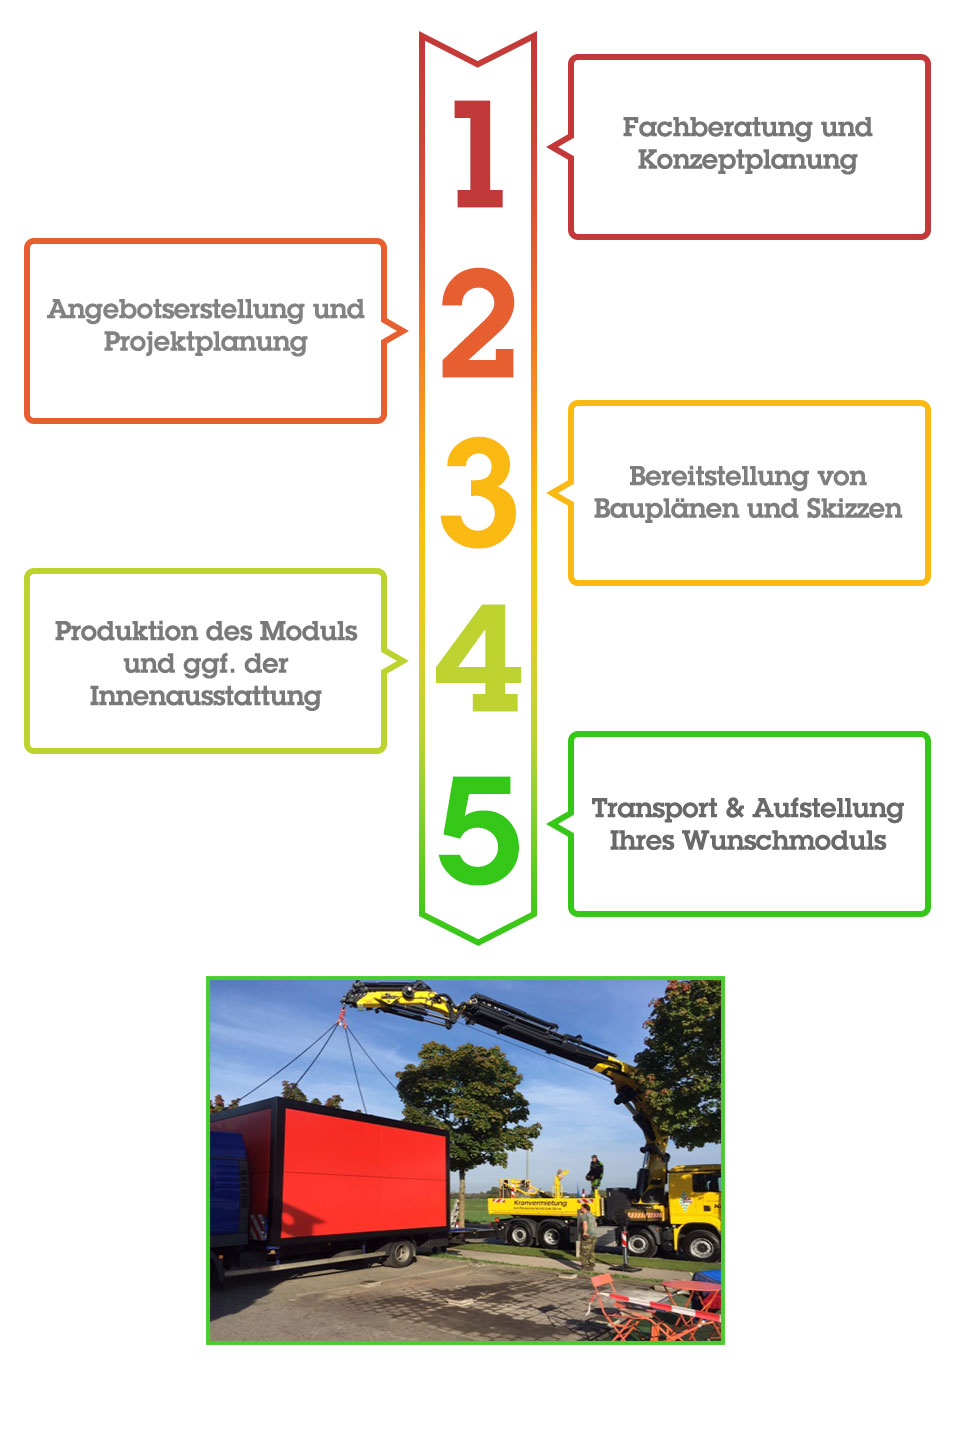 In 5 Steps zum Modul